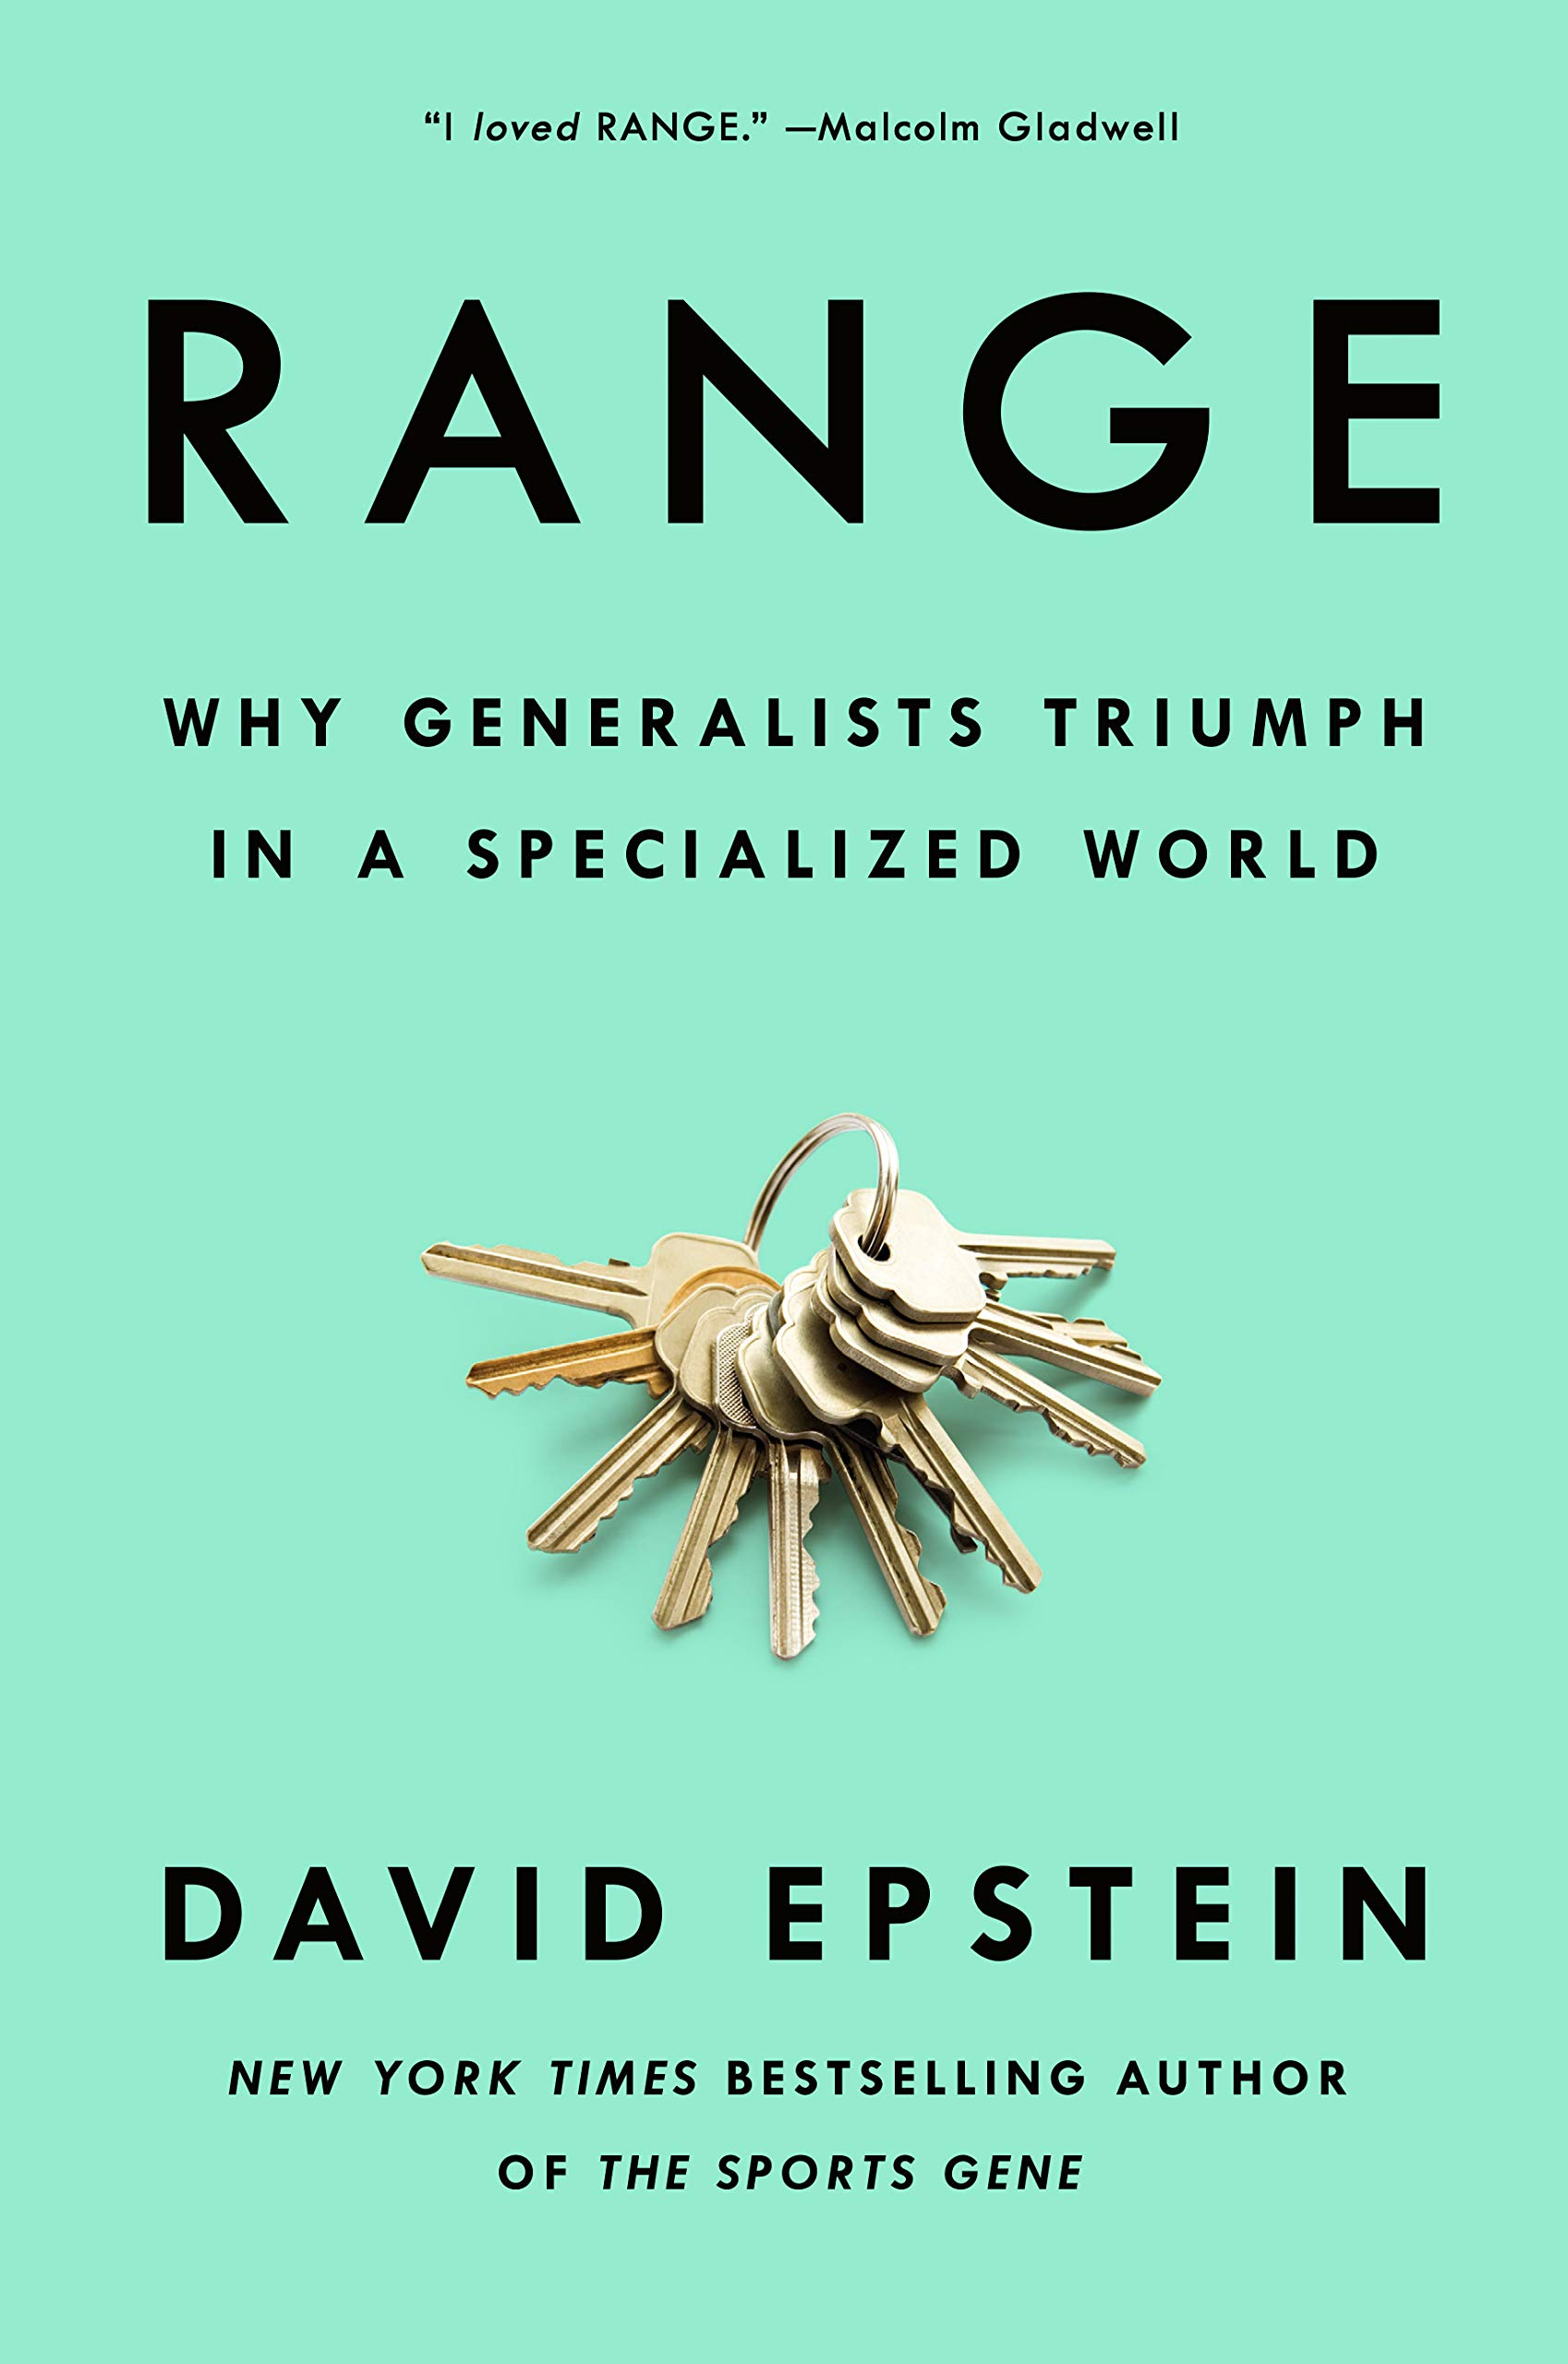 The age old debate of specialists vs generalists. Epstein argues with fact-based research that generalists will become even more important due to fast-changing nature of the world. Malcolm Gladwell agrees.